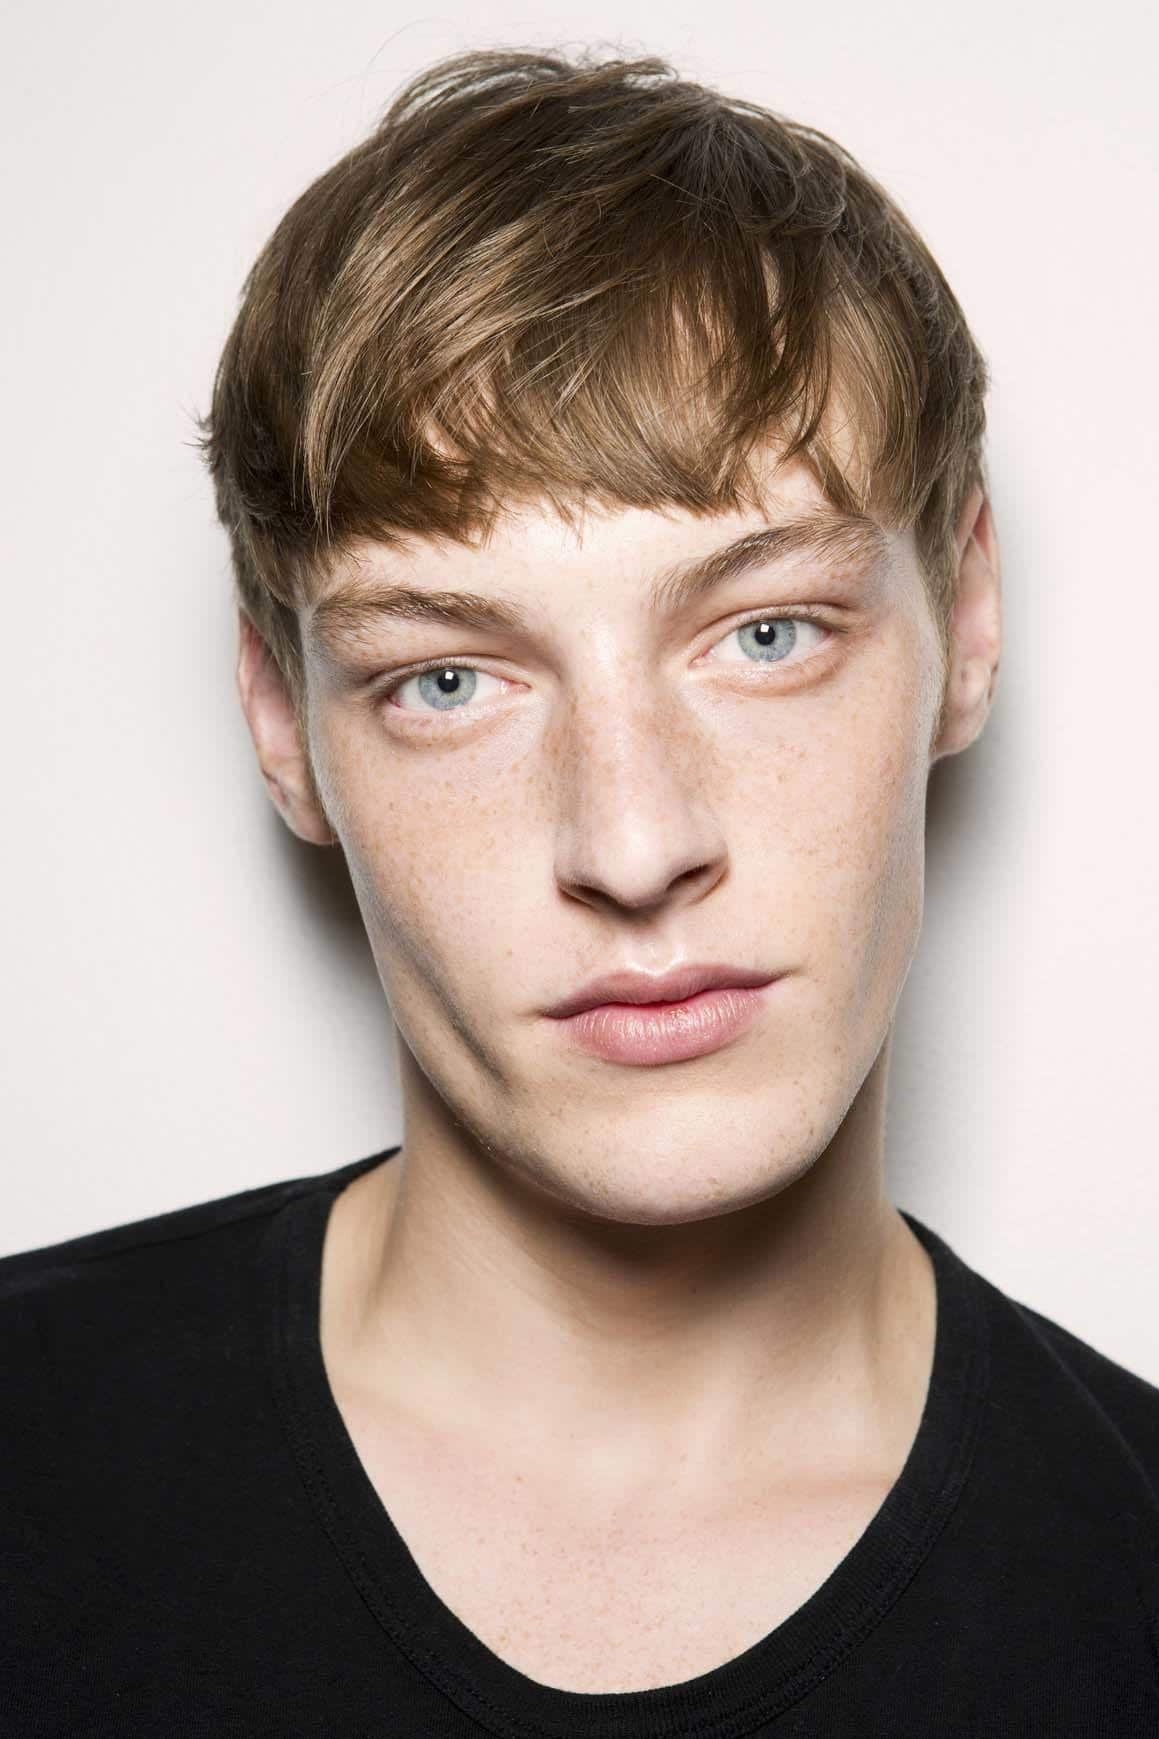 Tapered haircut with messy fringe.